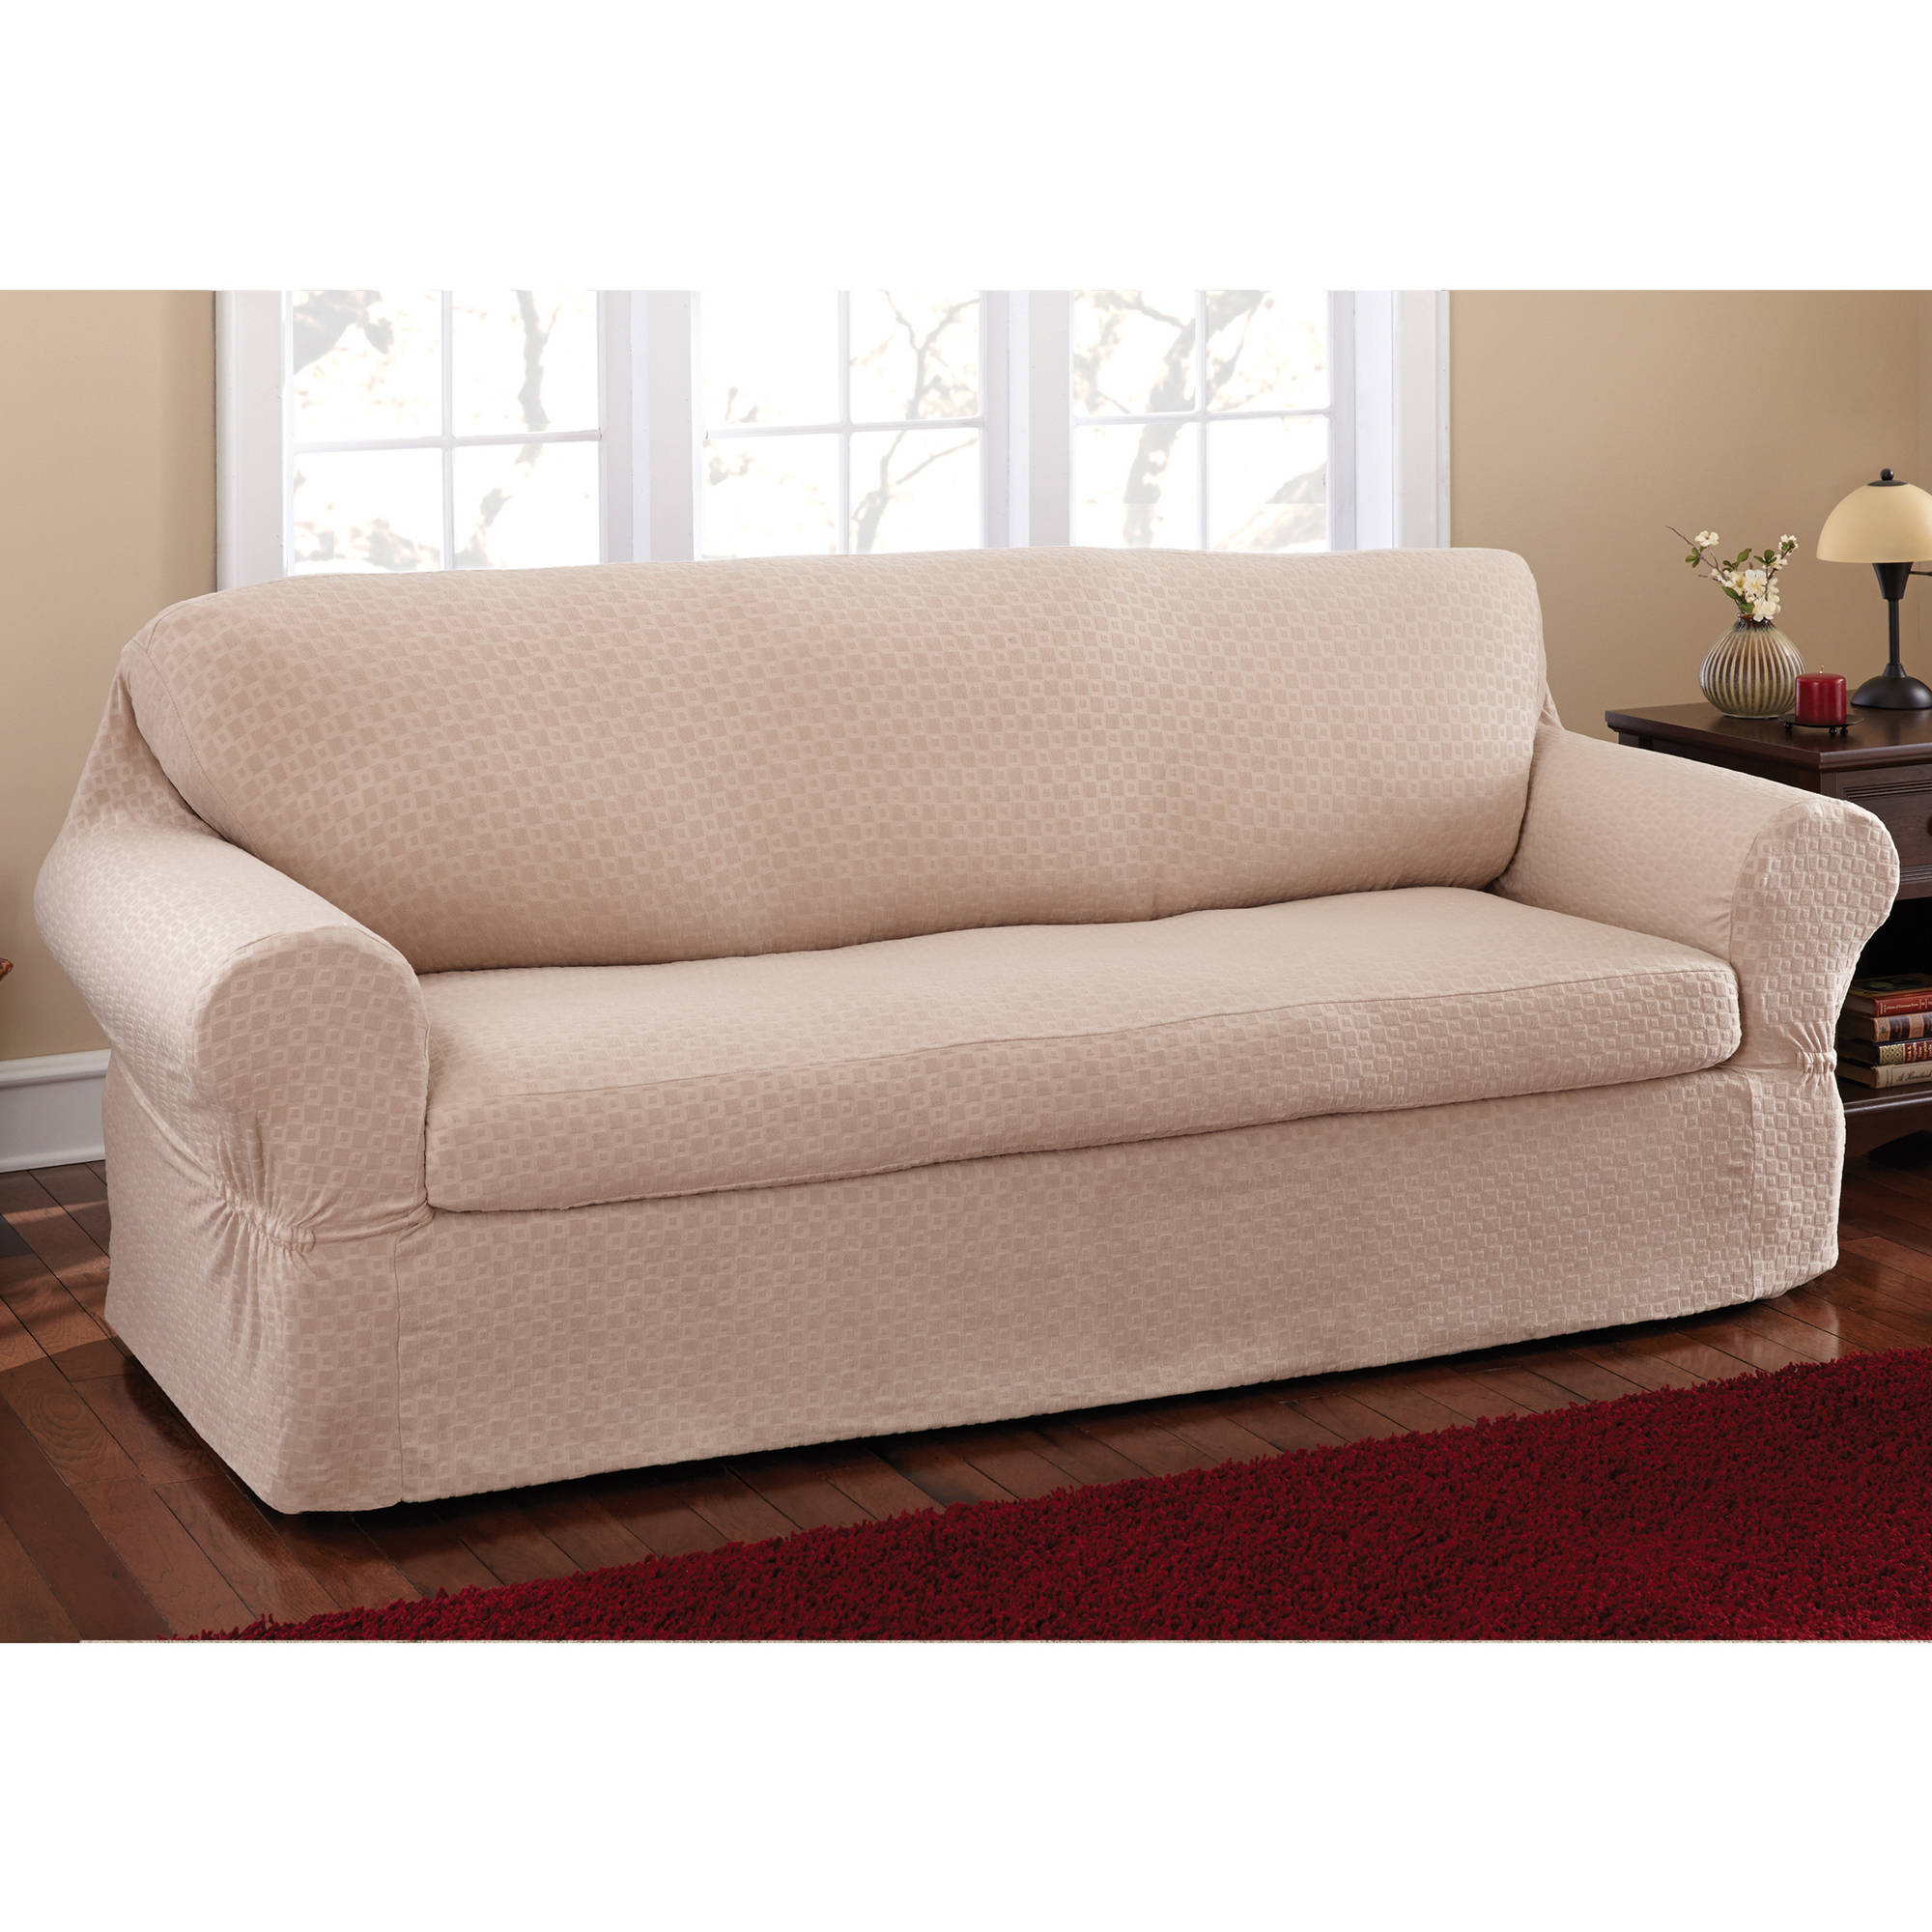 Mainstays Conrad 2-Piece Sofa Slipcover by Maytex Mills